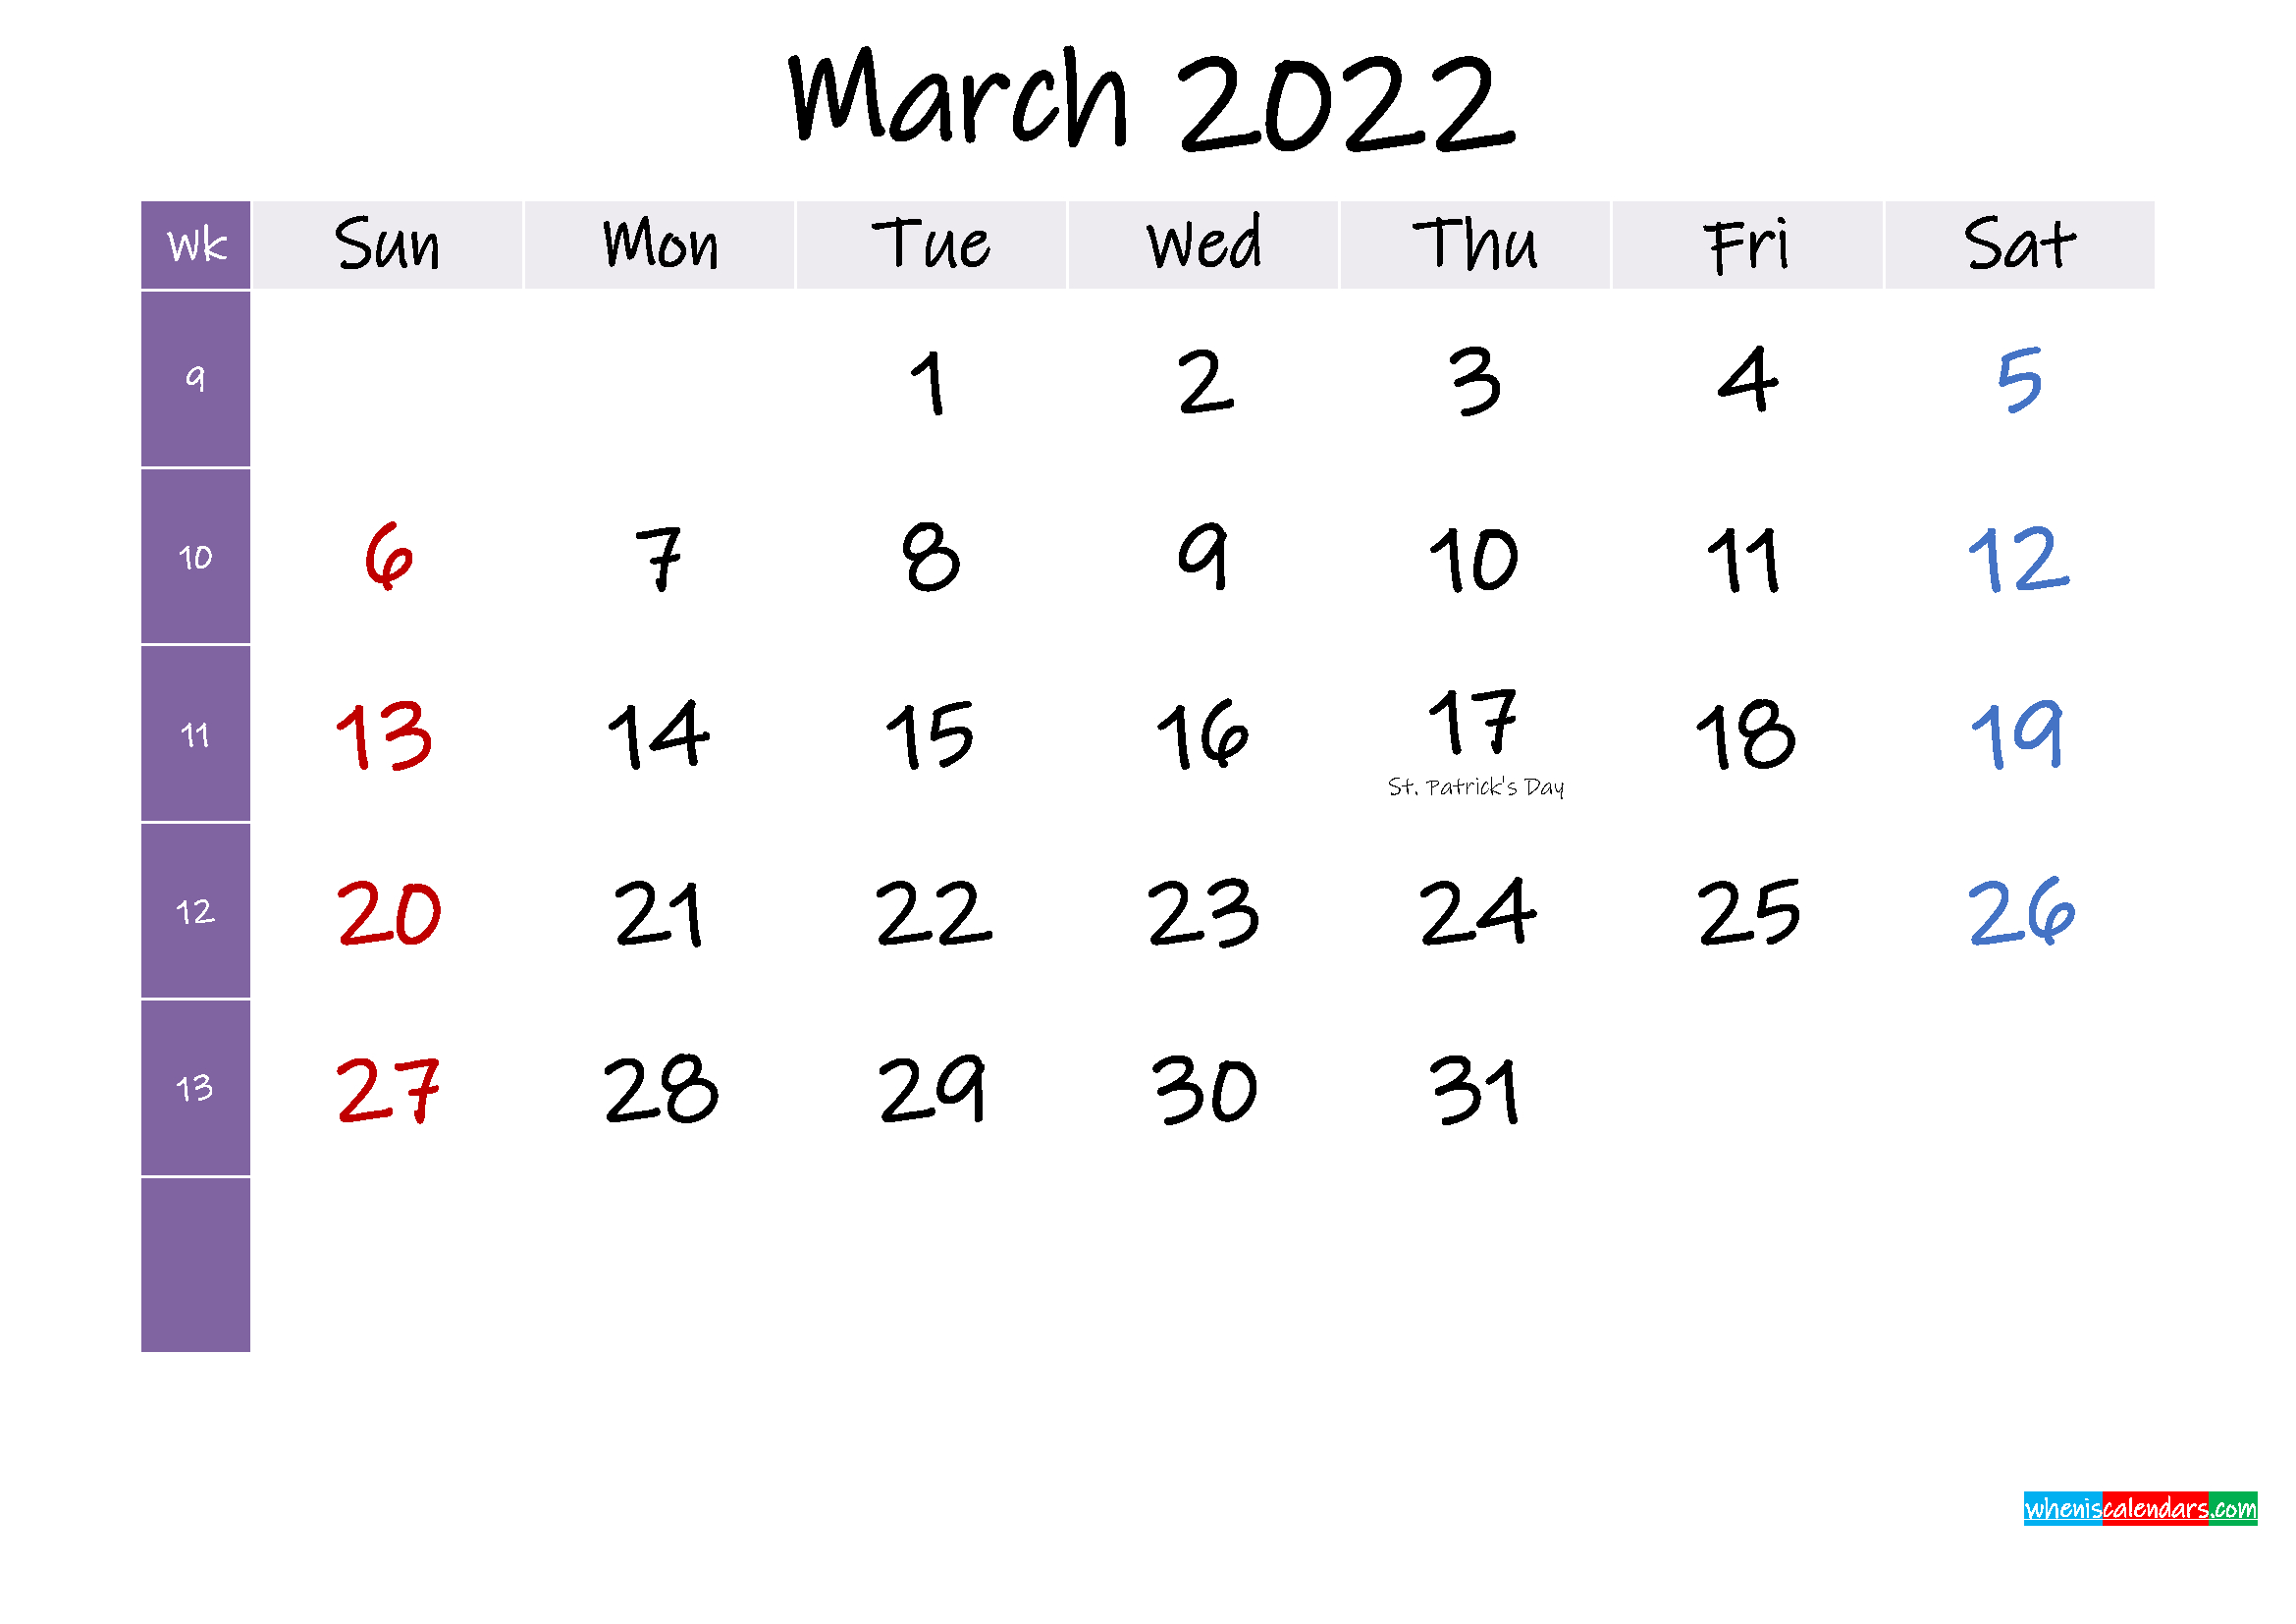 March 2022 Free Printable Calendar With Holidays intended for March 2022 Calendar Template Image